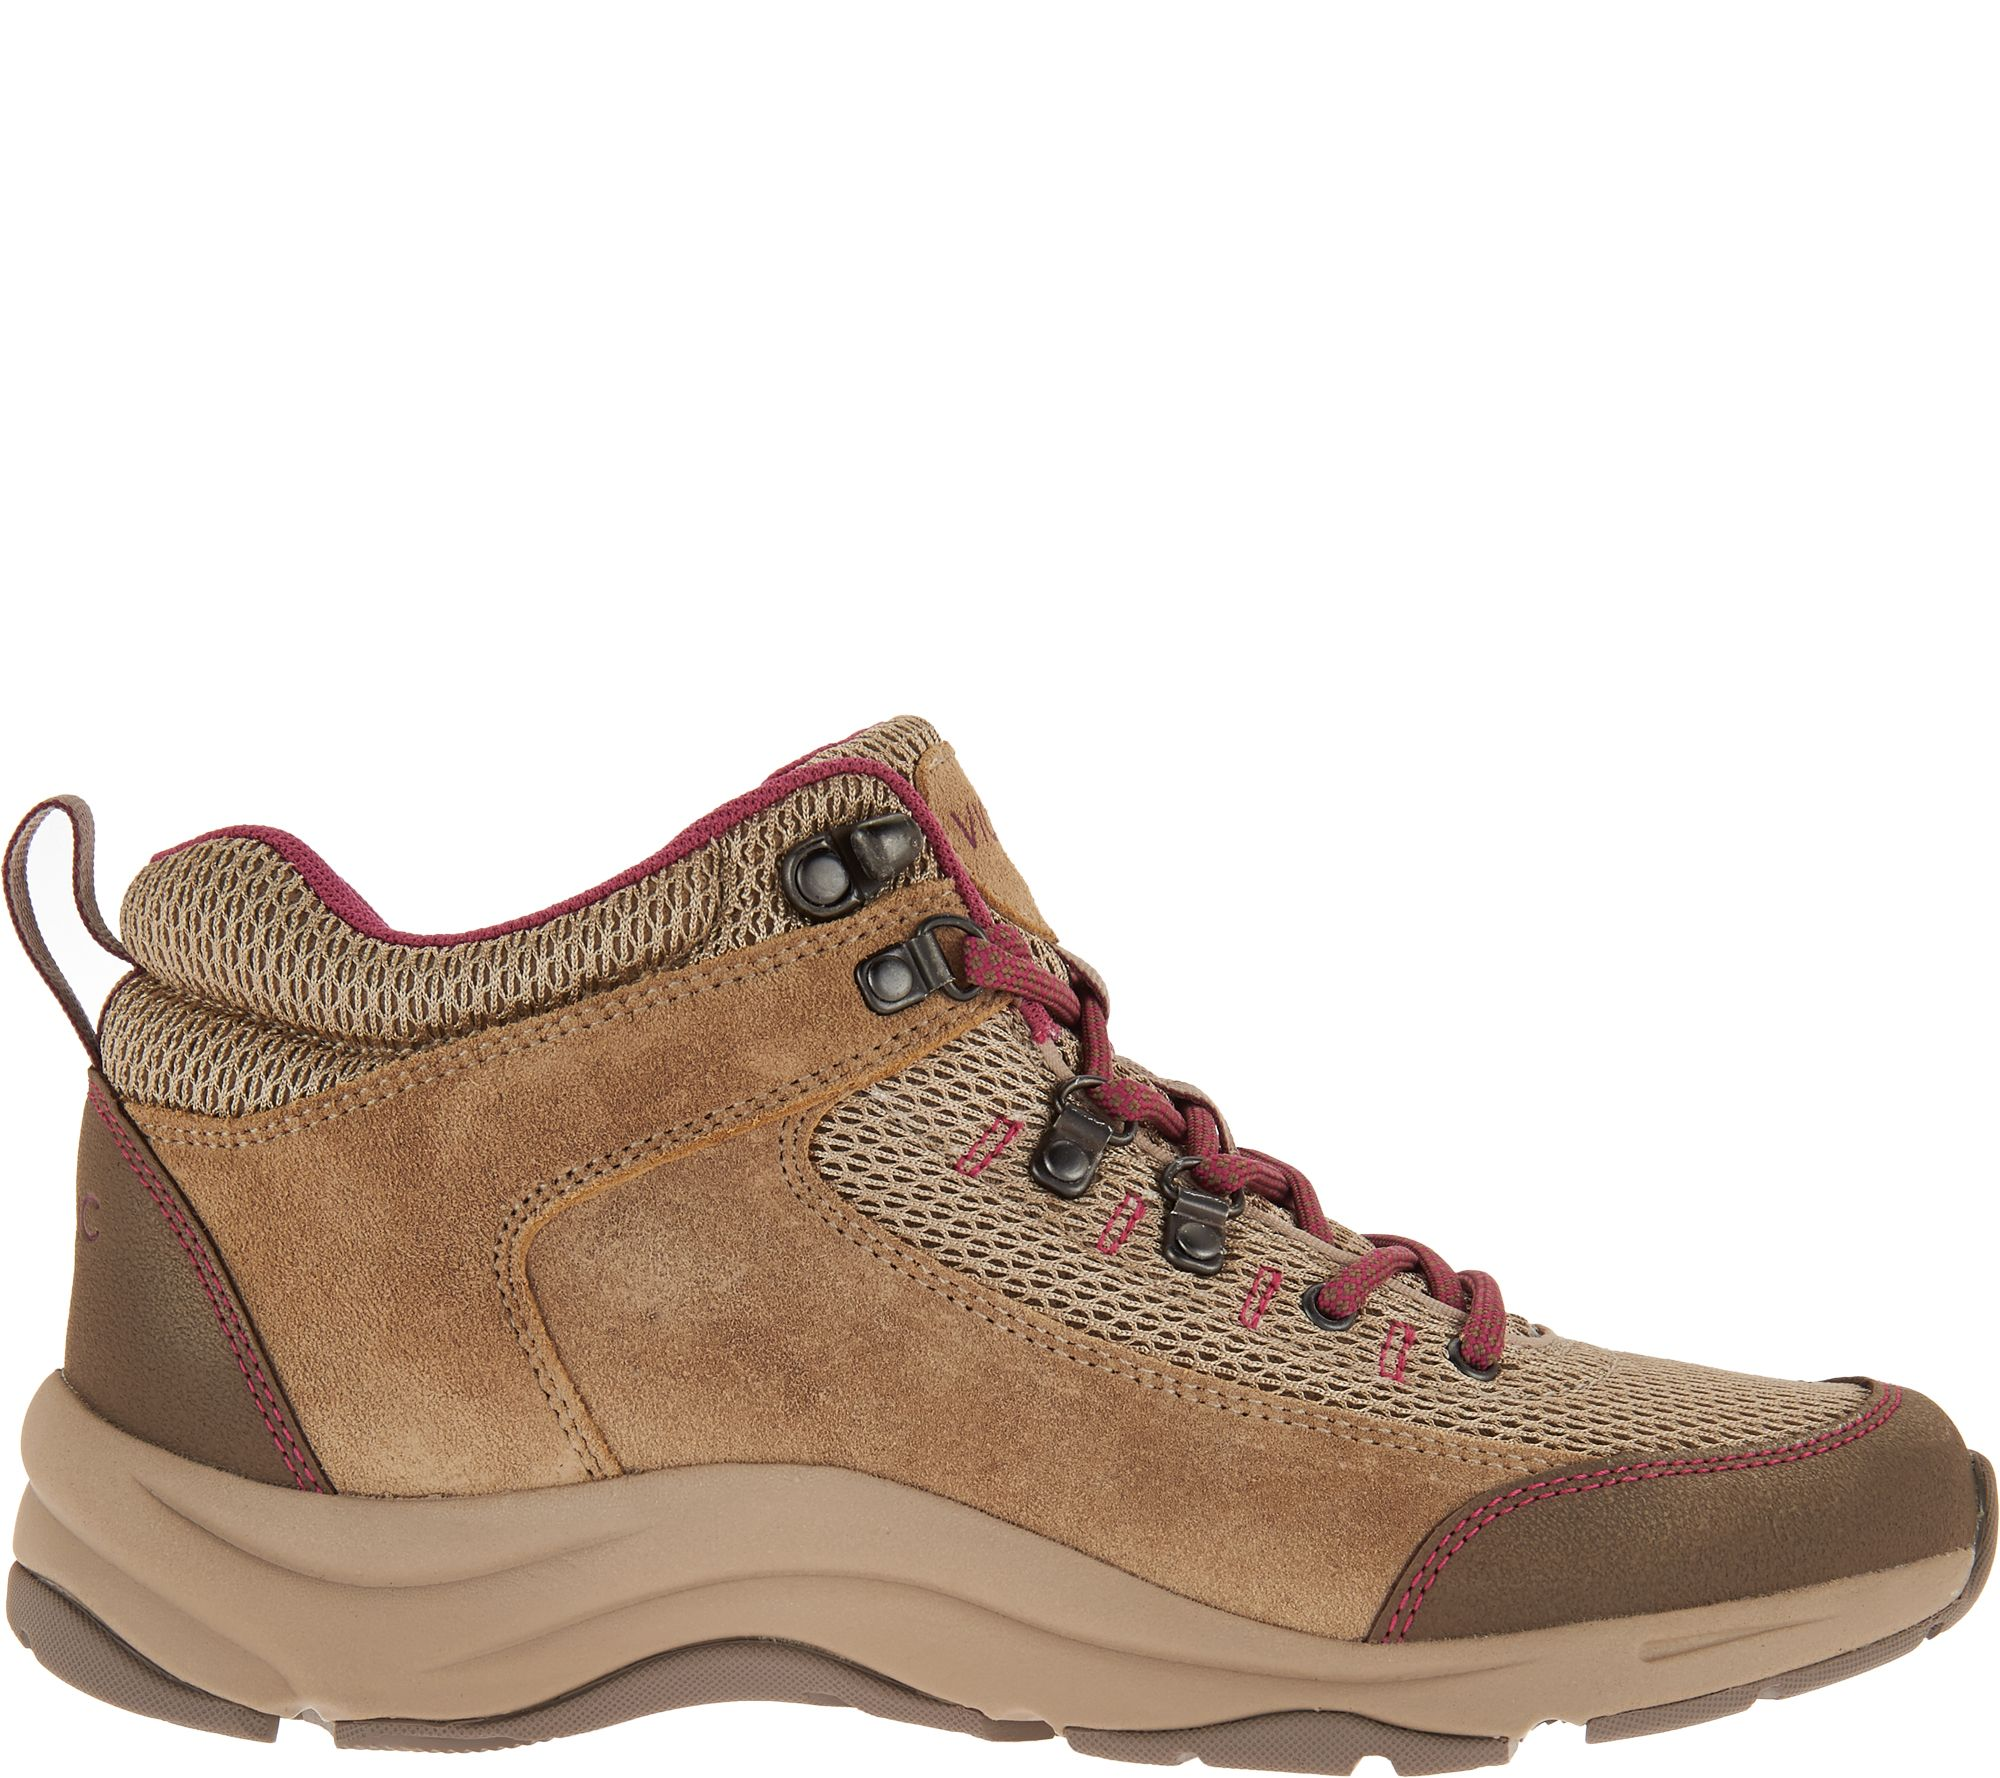 609e1faf82dce Vionic Water-Resistant Hiking Sneakers - Cypress — QVC.com